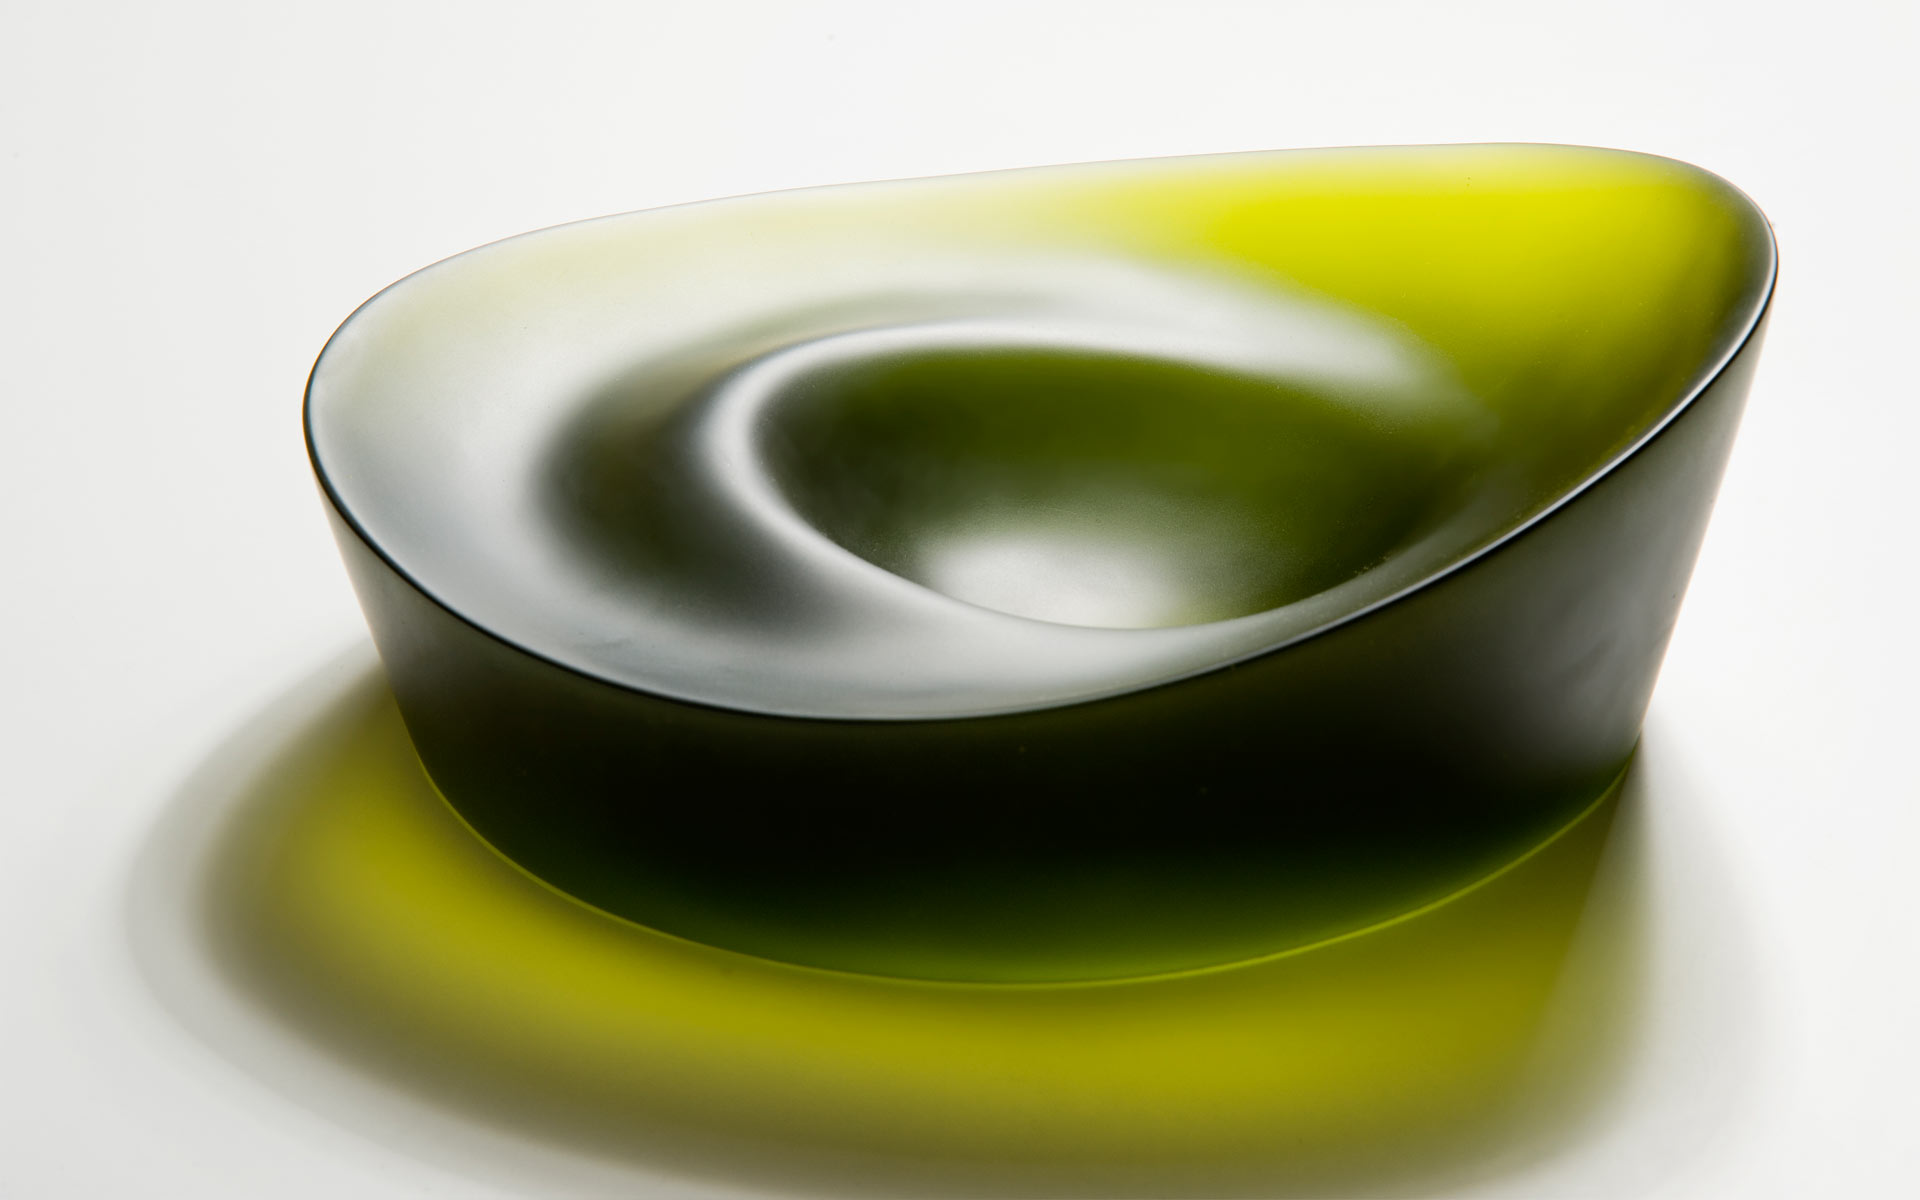 Olive Green Bowl Form